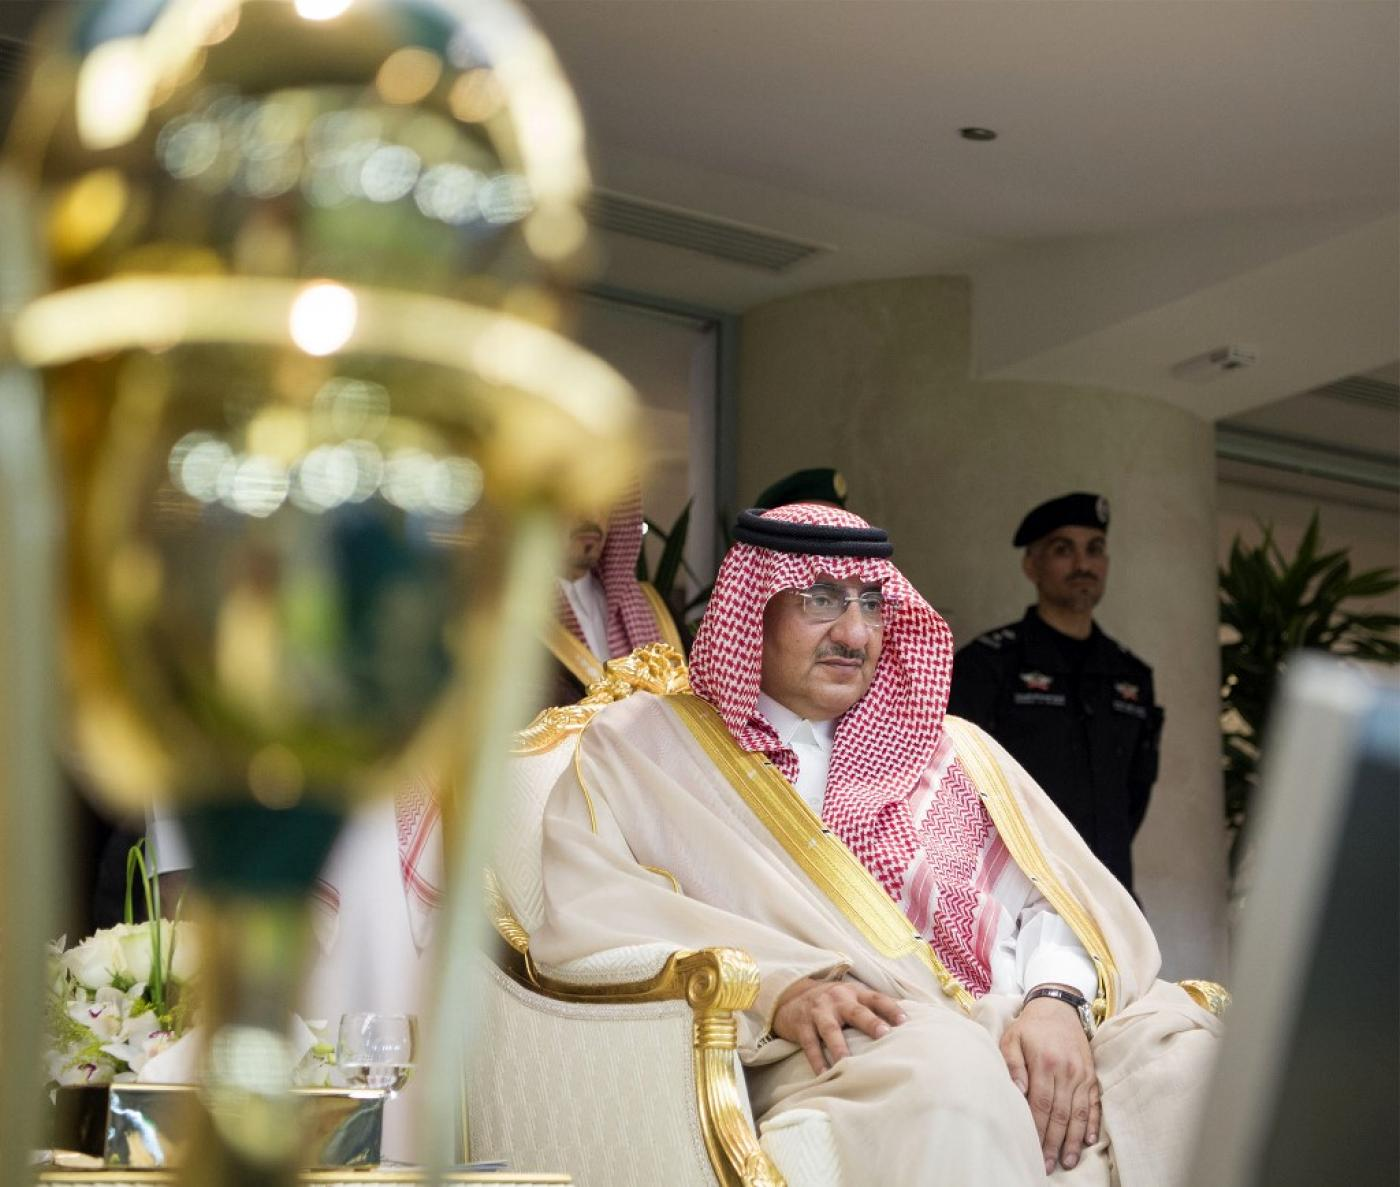 Mohammed bin Nayef sitting down at the Saudi Royal Palace in 2017.